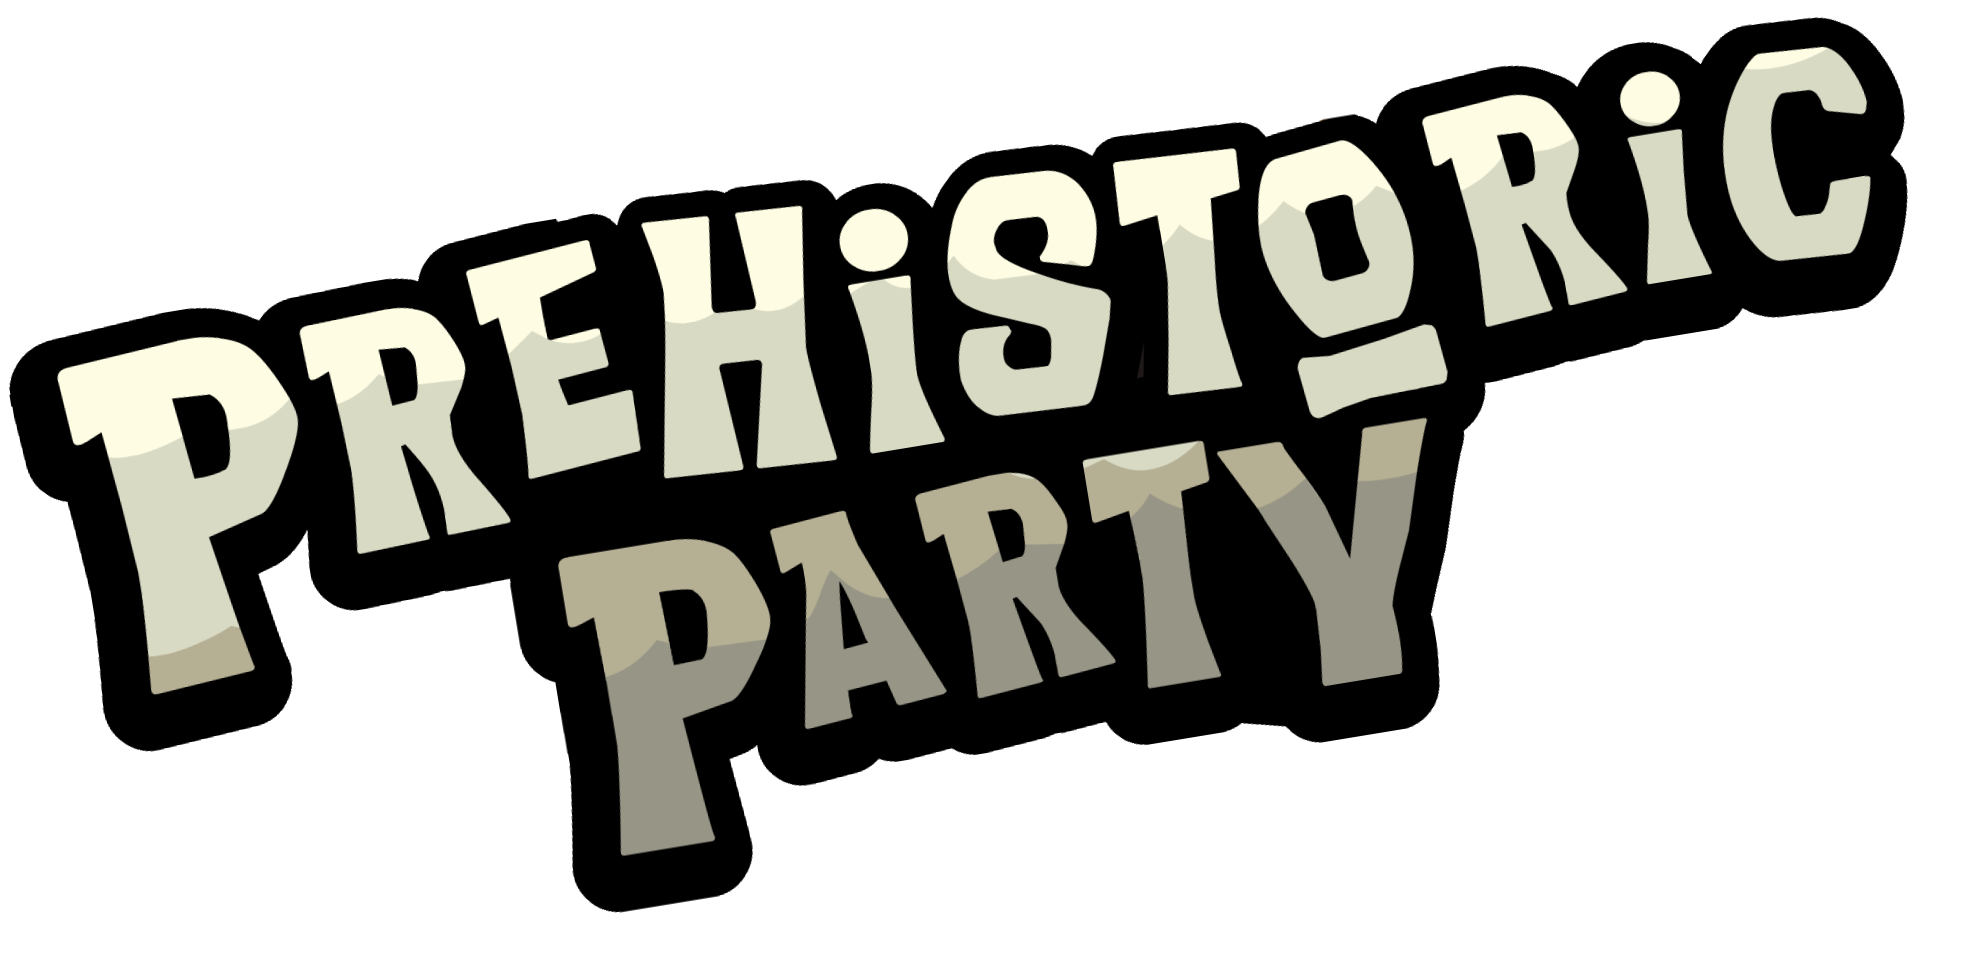 Prehistoric party club penguin. History clipart prehistory